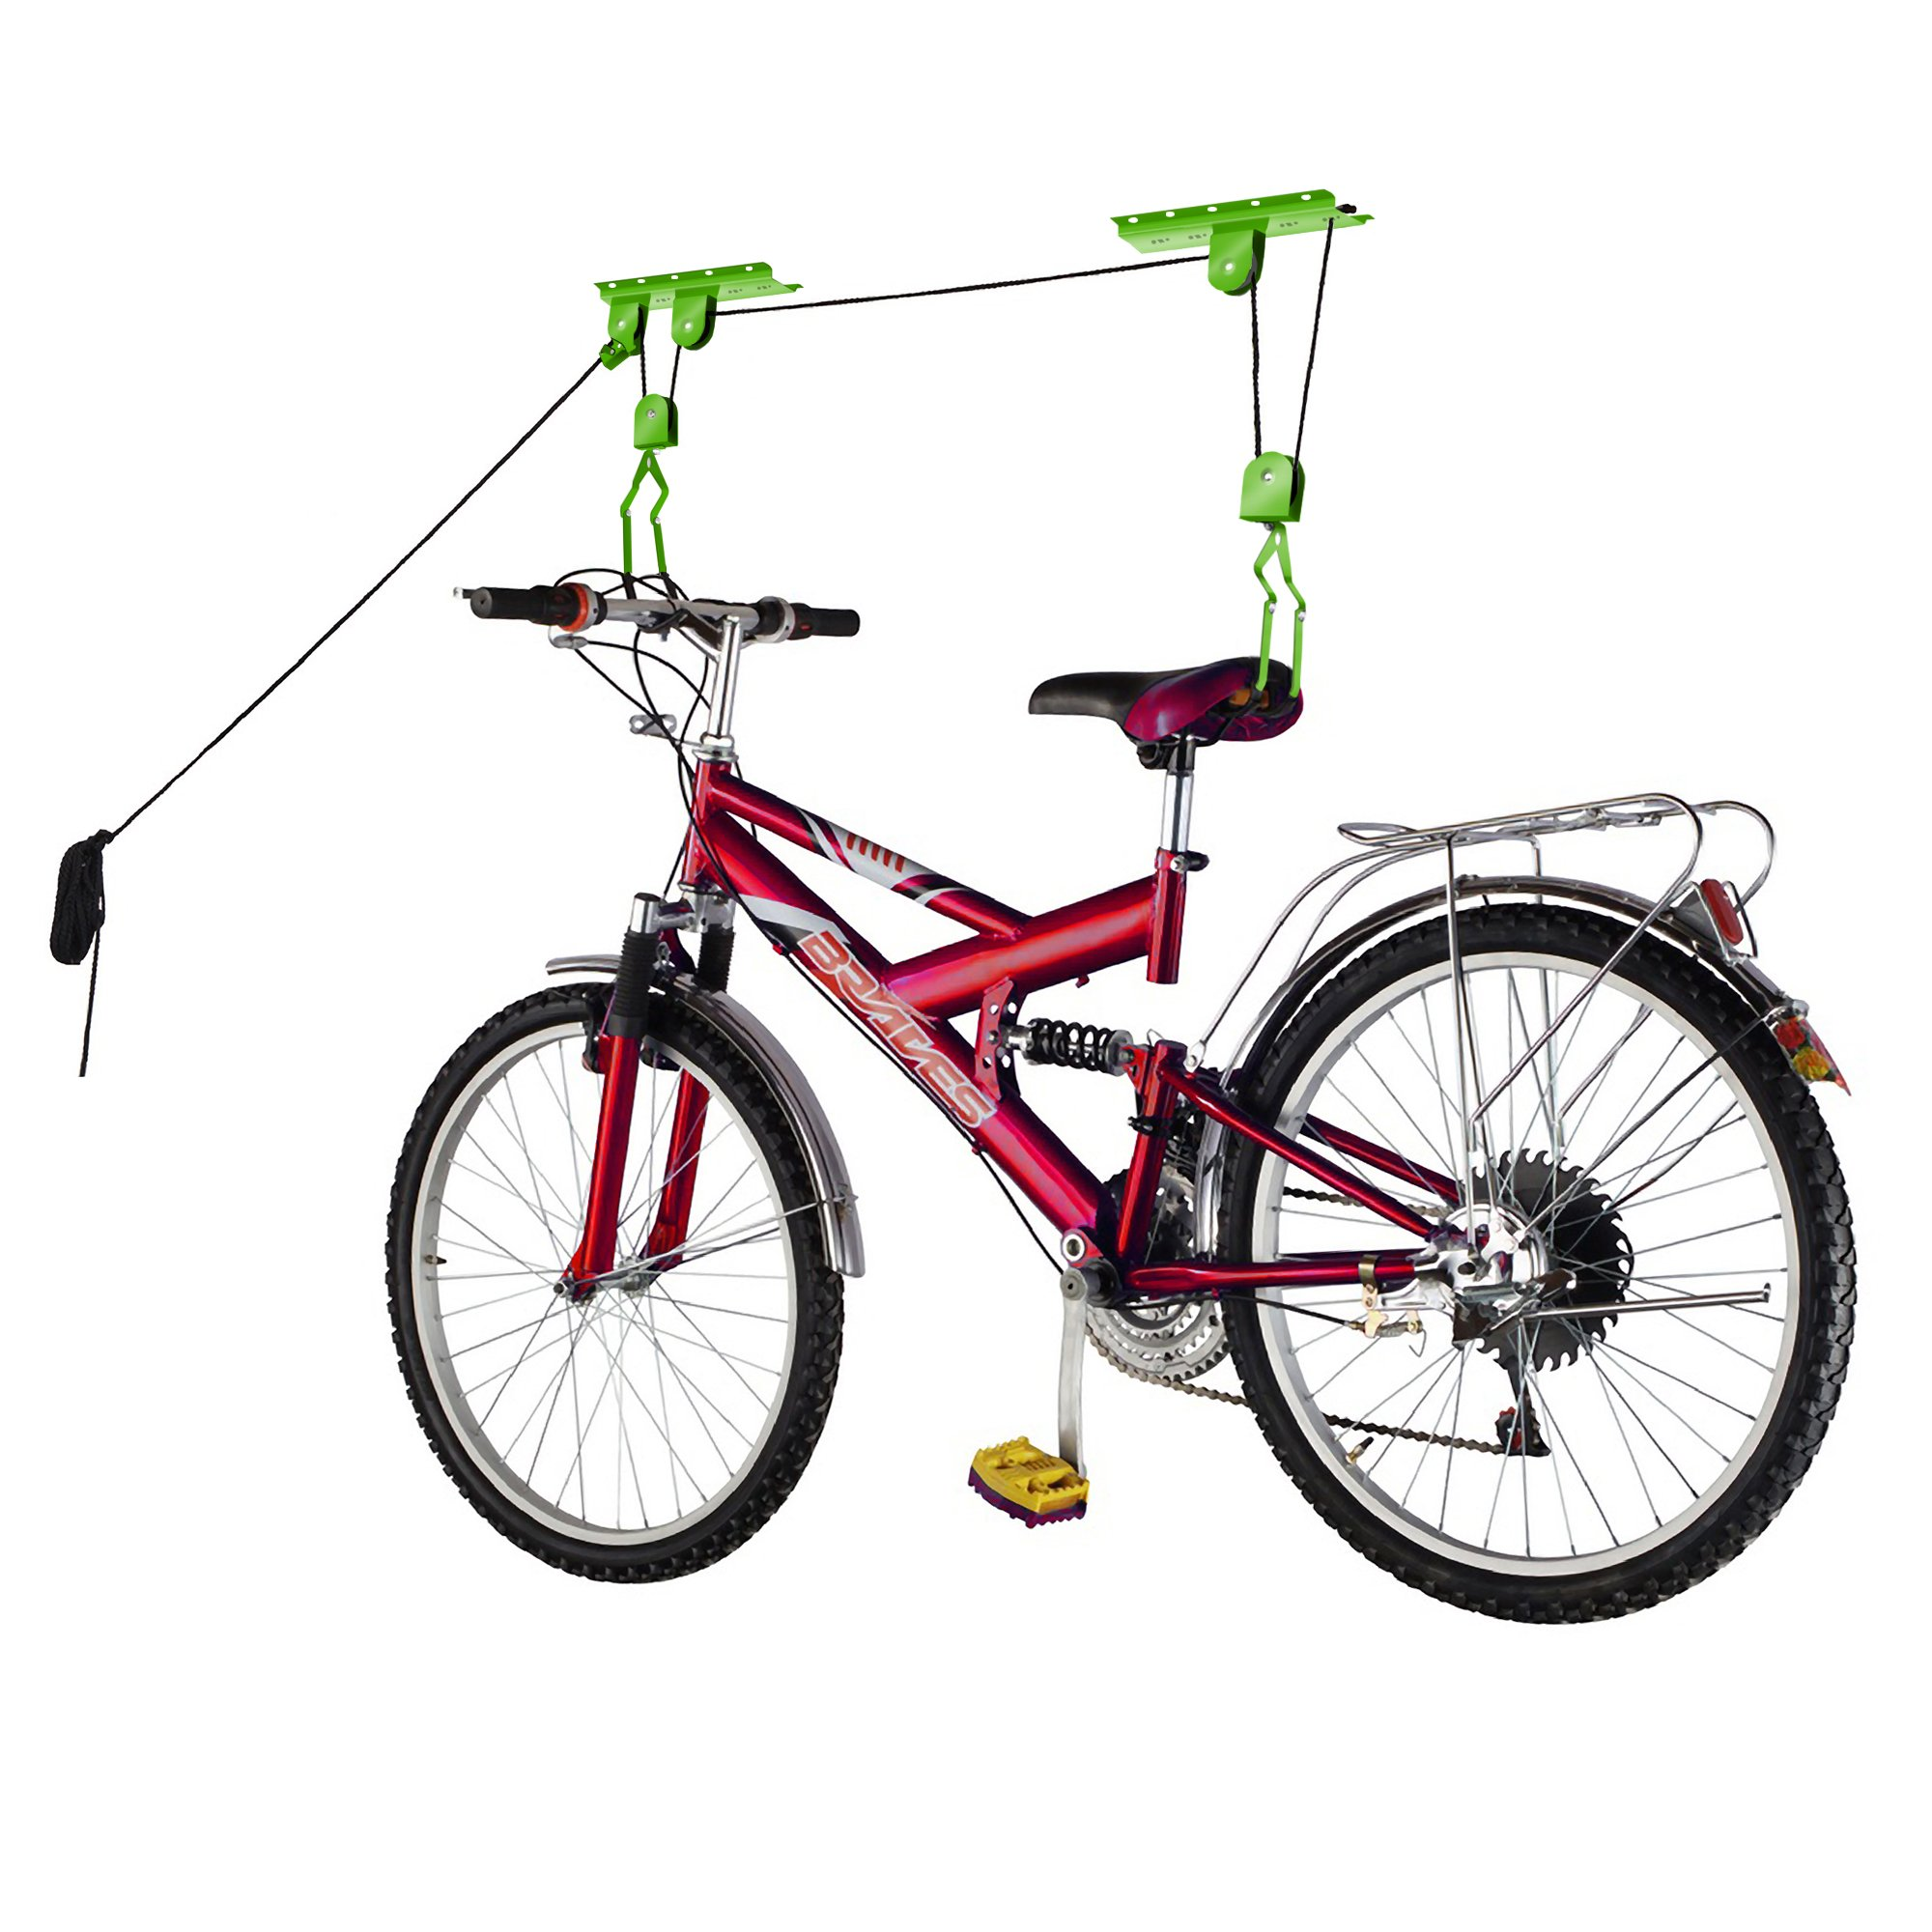 Bike Lane Products Bicycle Garage Storage Lift Bike Hoist 100Lb Capacity Heavy Duty, Green